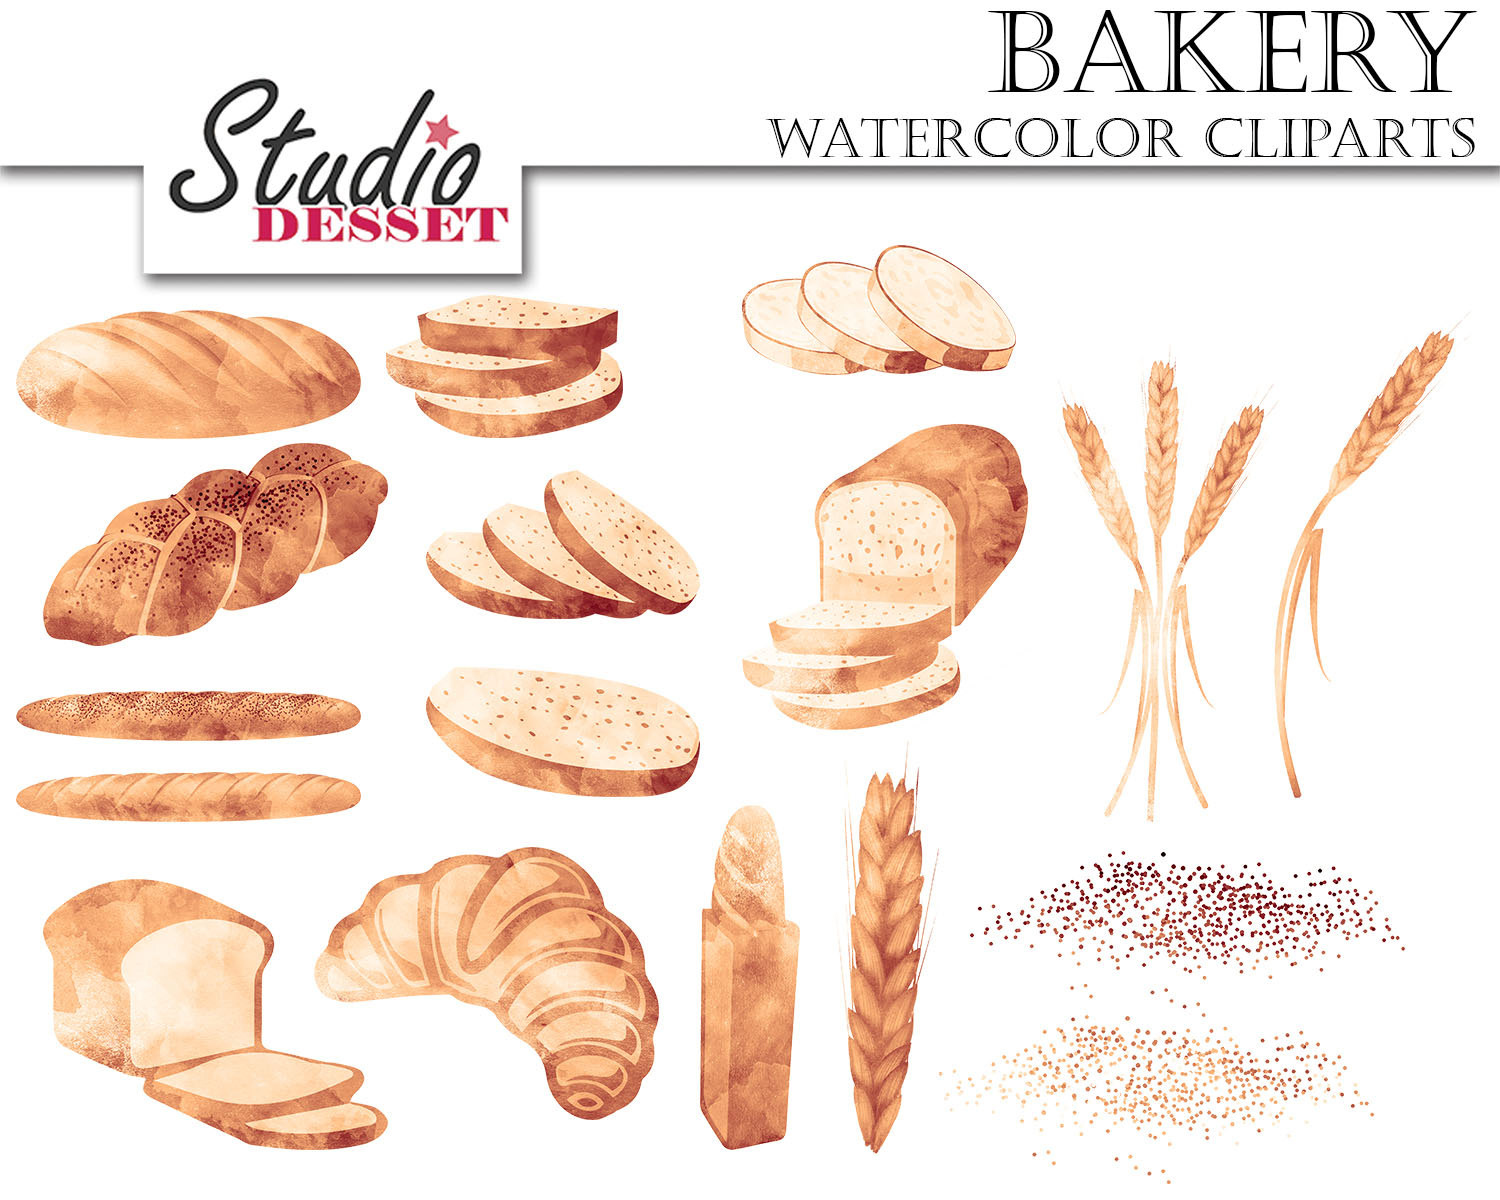 Bread clipart watercolor. Cliparts bakery graphics wheat